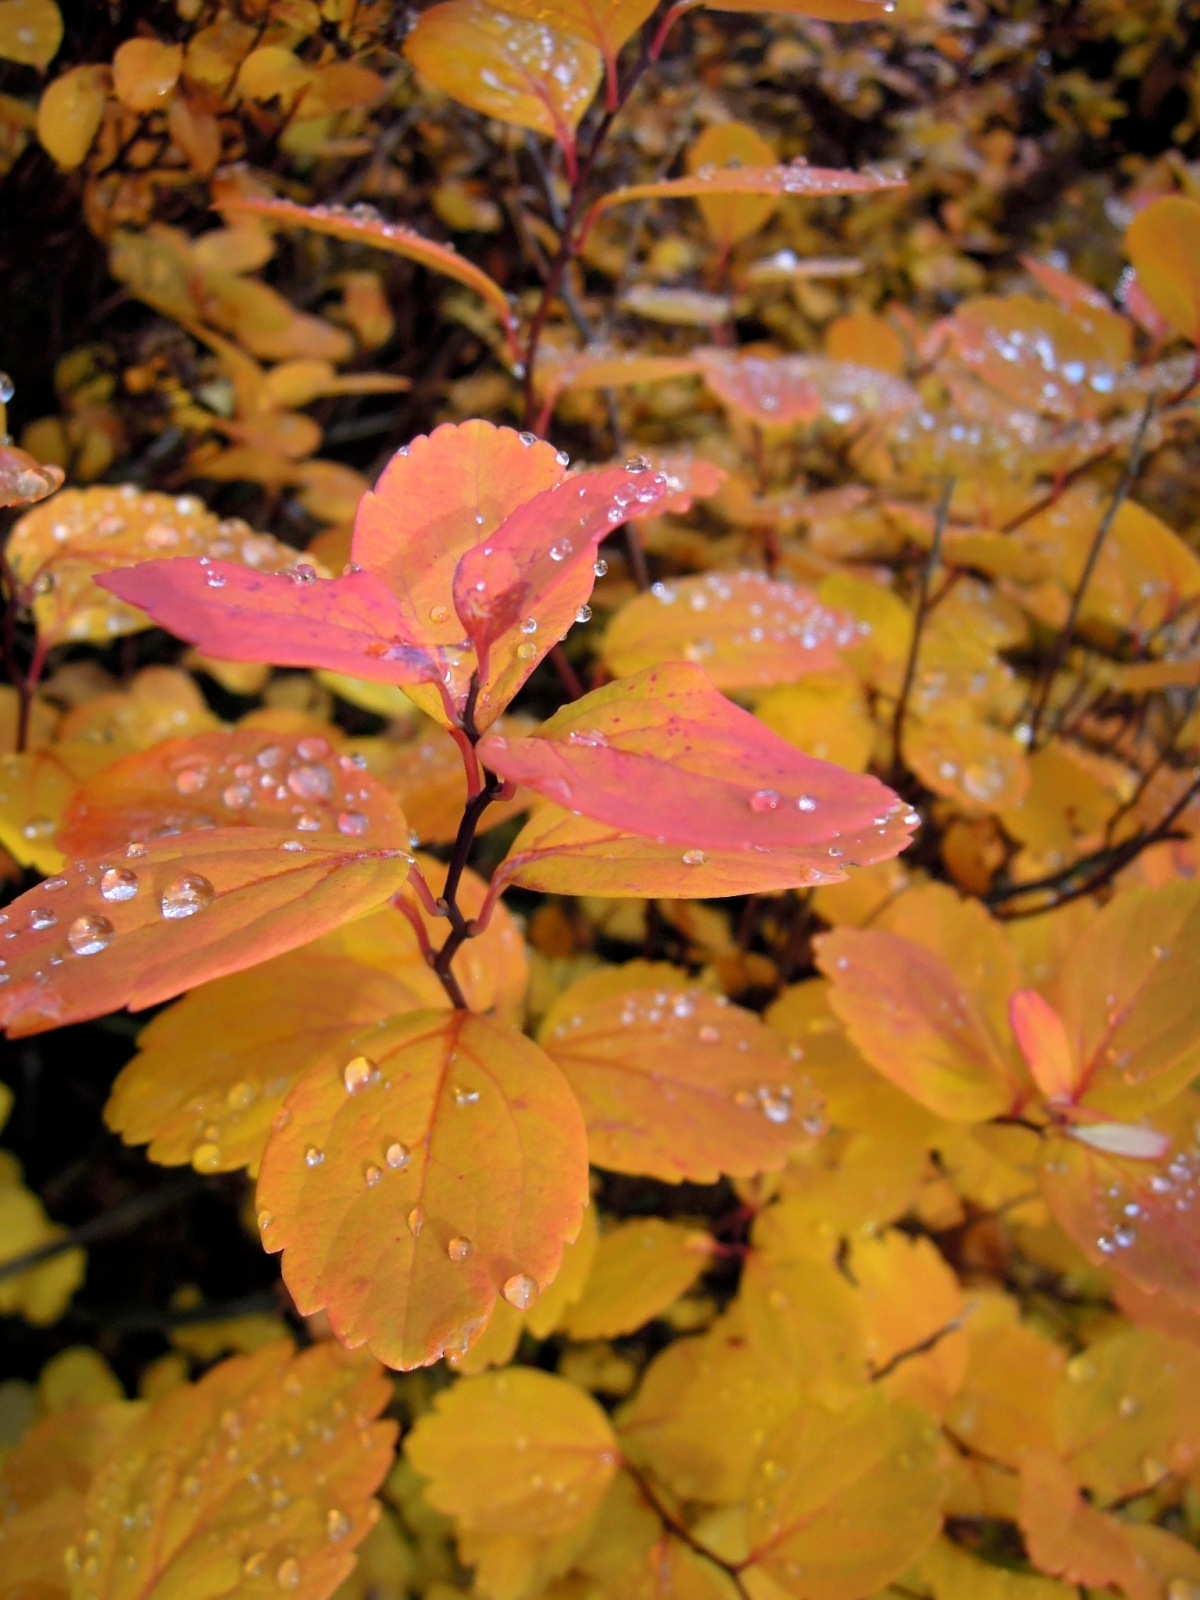 Dewy orange-red leaves